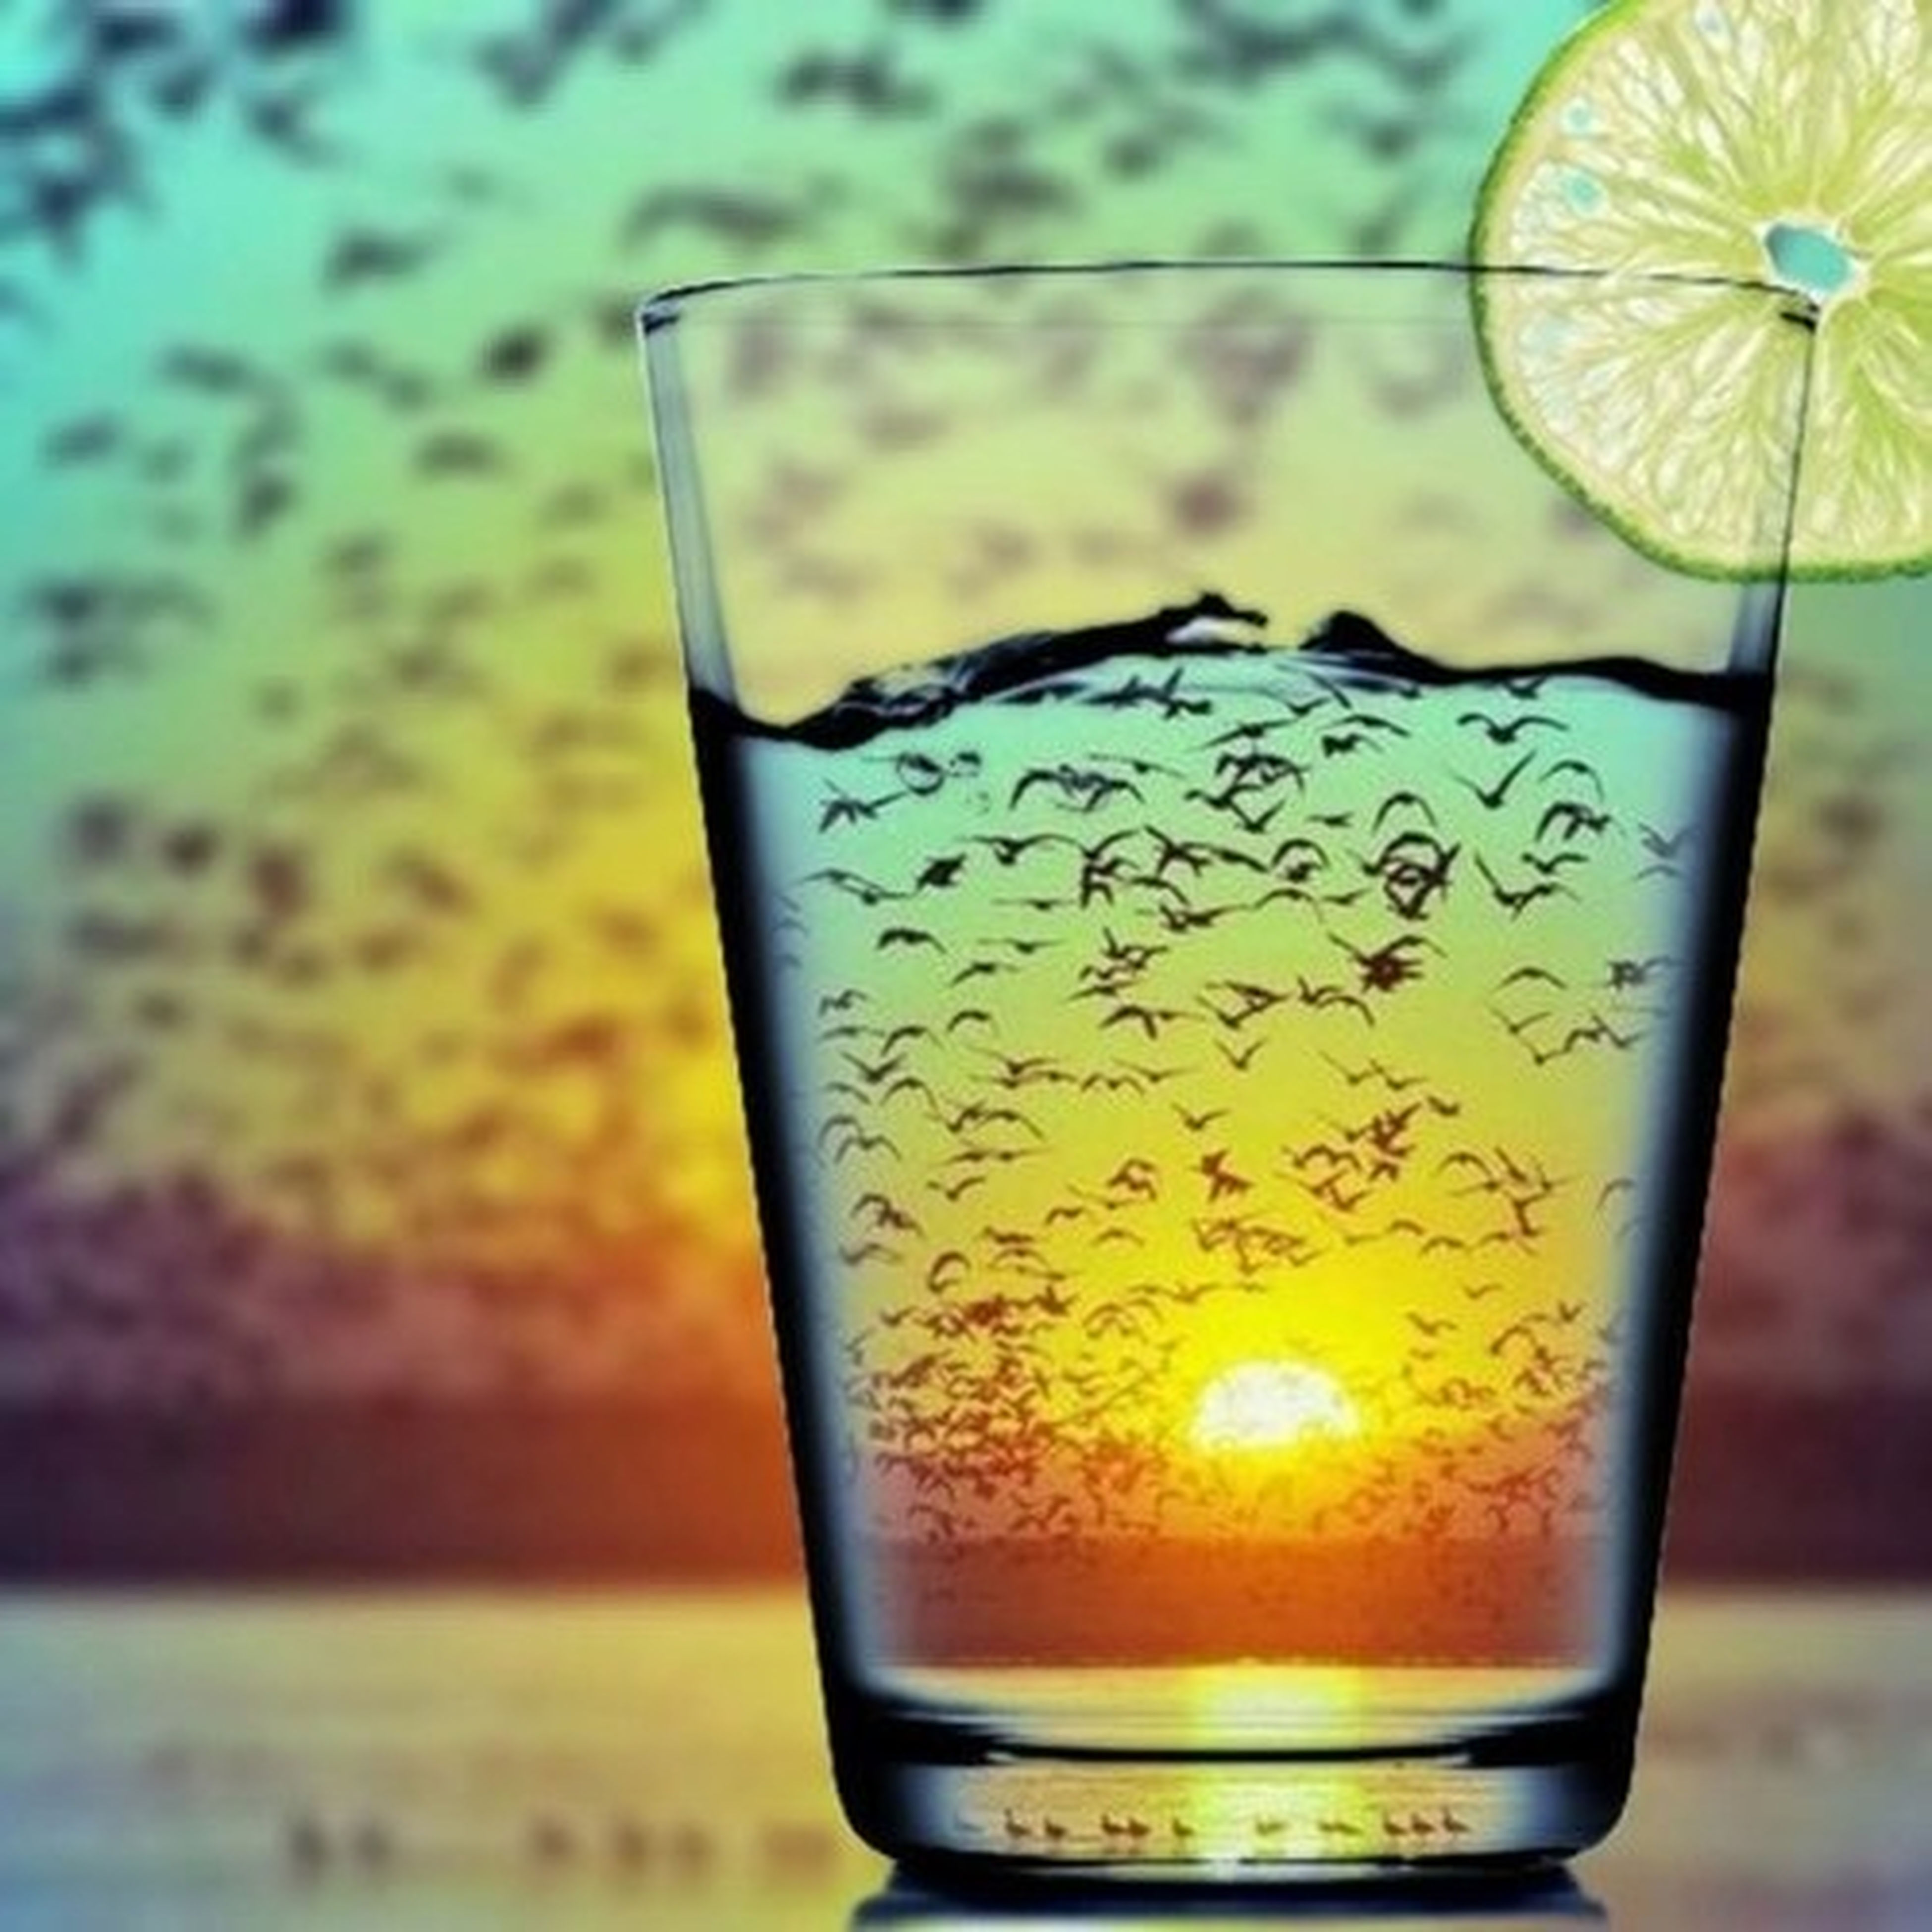 drink, close-up, glass - material, refreshment, focus on foreground, freshness, food and drink, transparent, drinking glass, indoors, still life, glass, alcohol, table, yellow, sunset, orange color, drinking straw, no people, single object